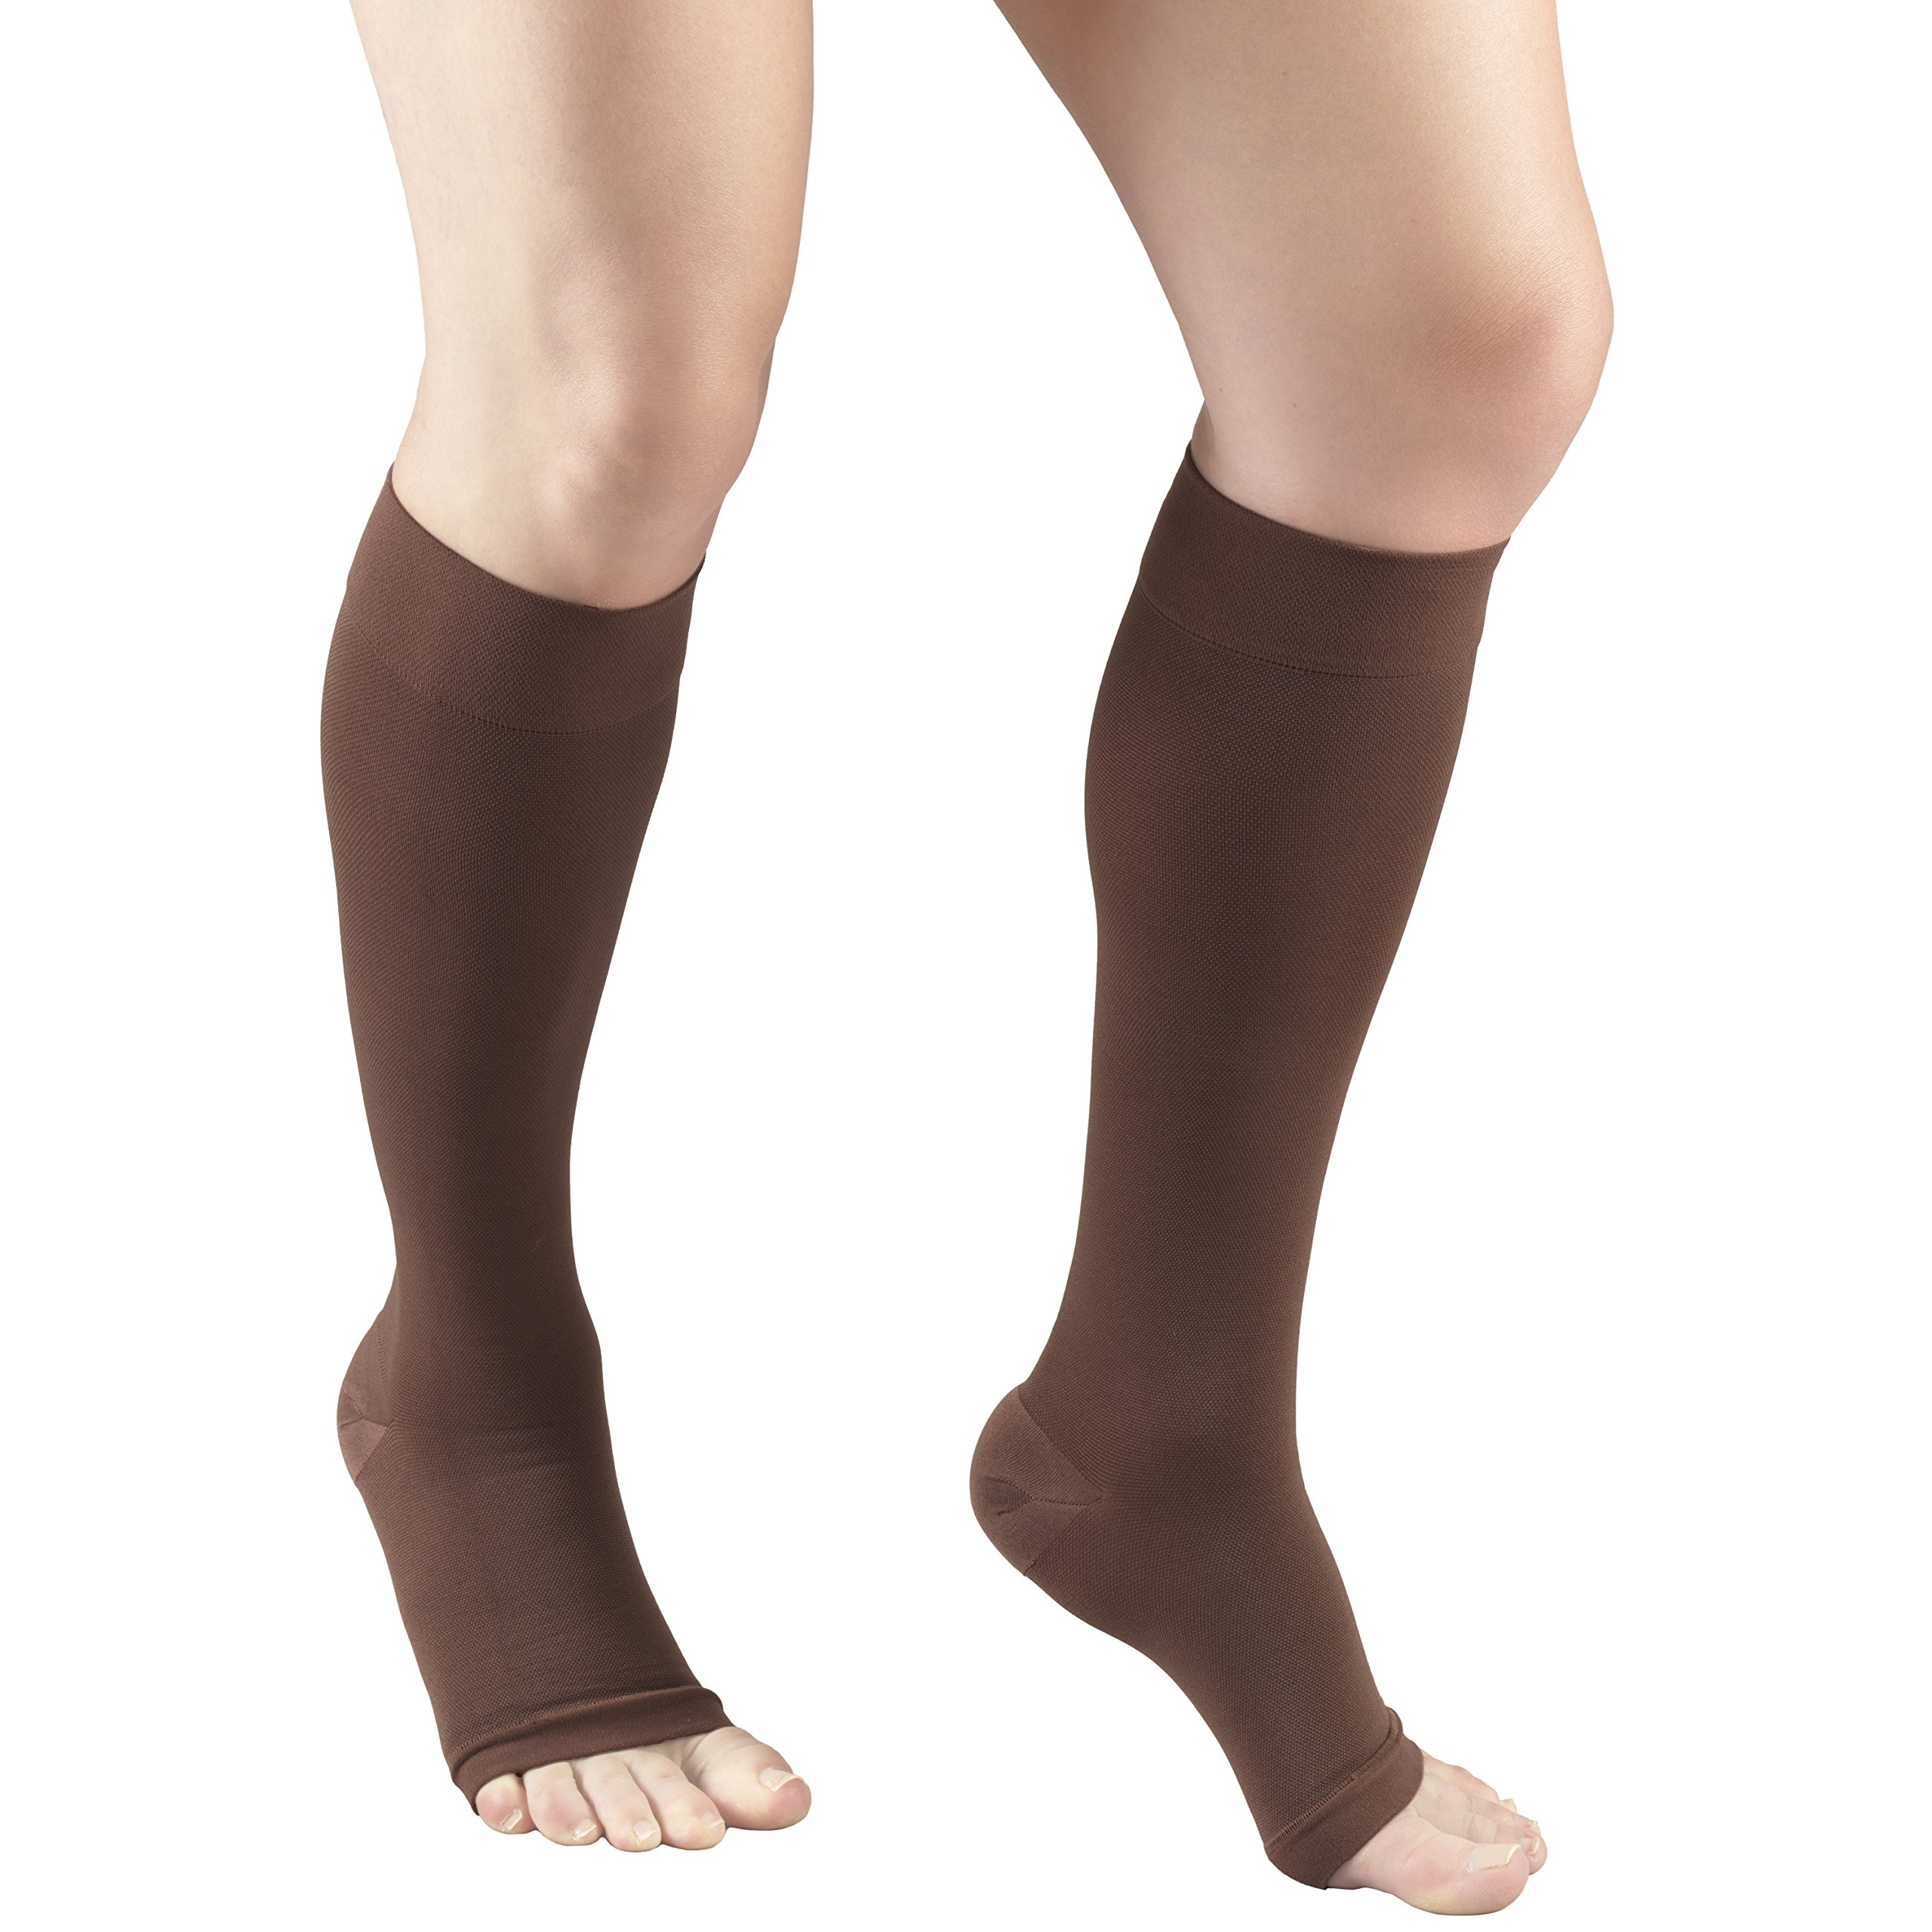 Truform 20-30 mmHg Compression Stocking for Men and Women, Knee High Length, Open Toe, Brown, Small